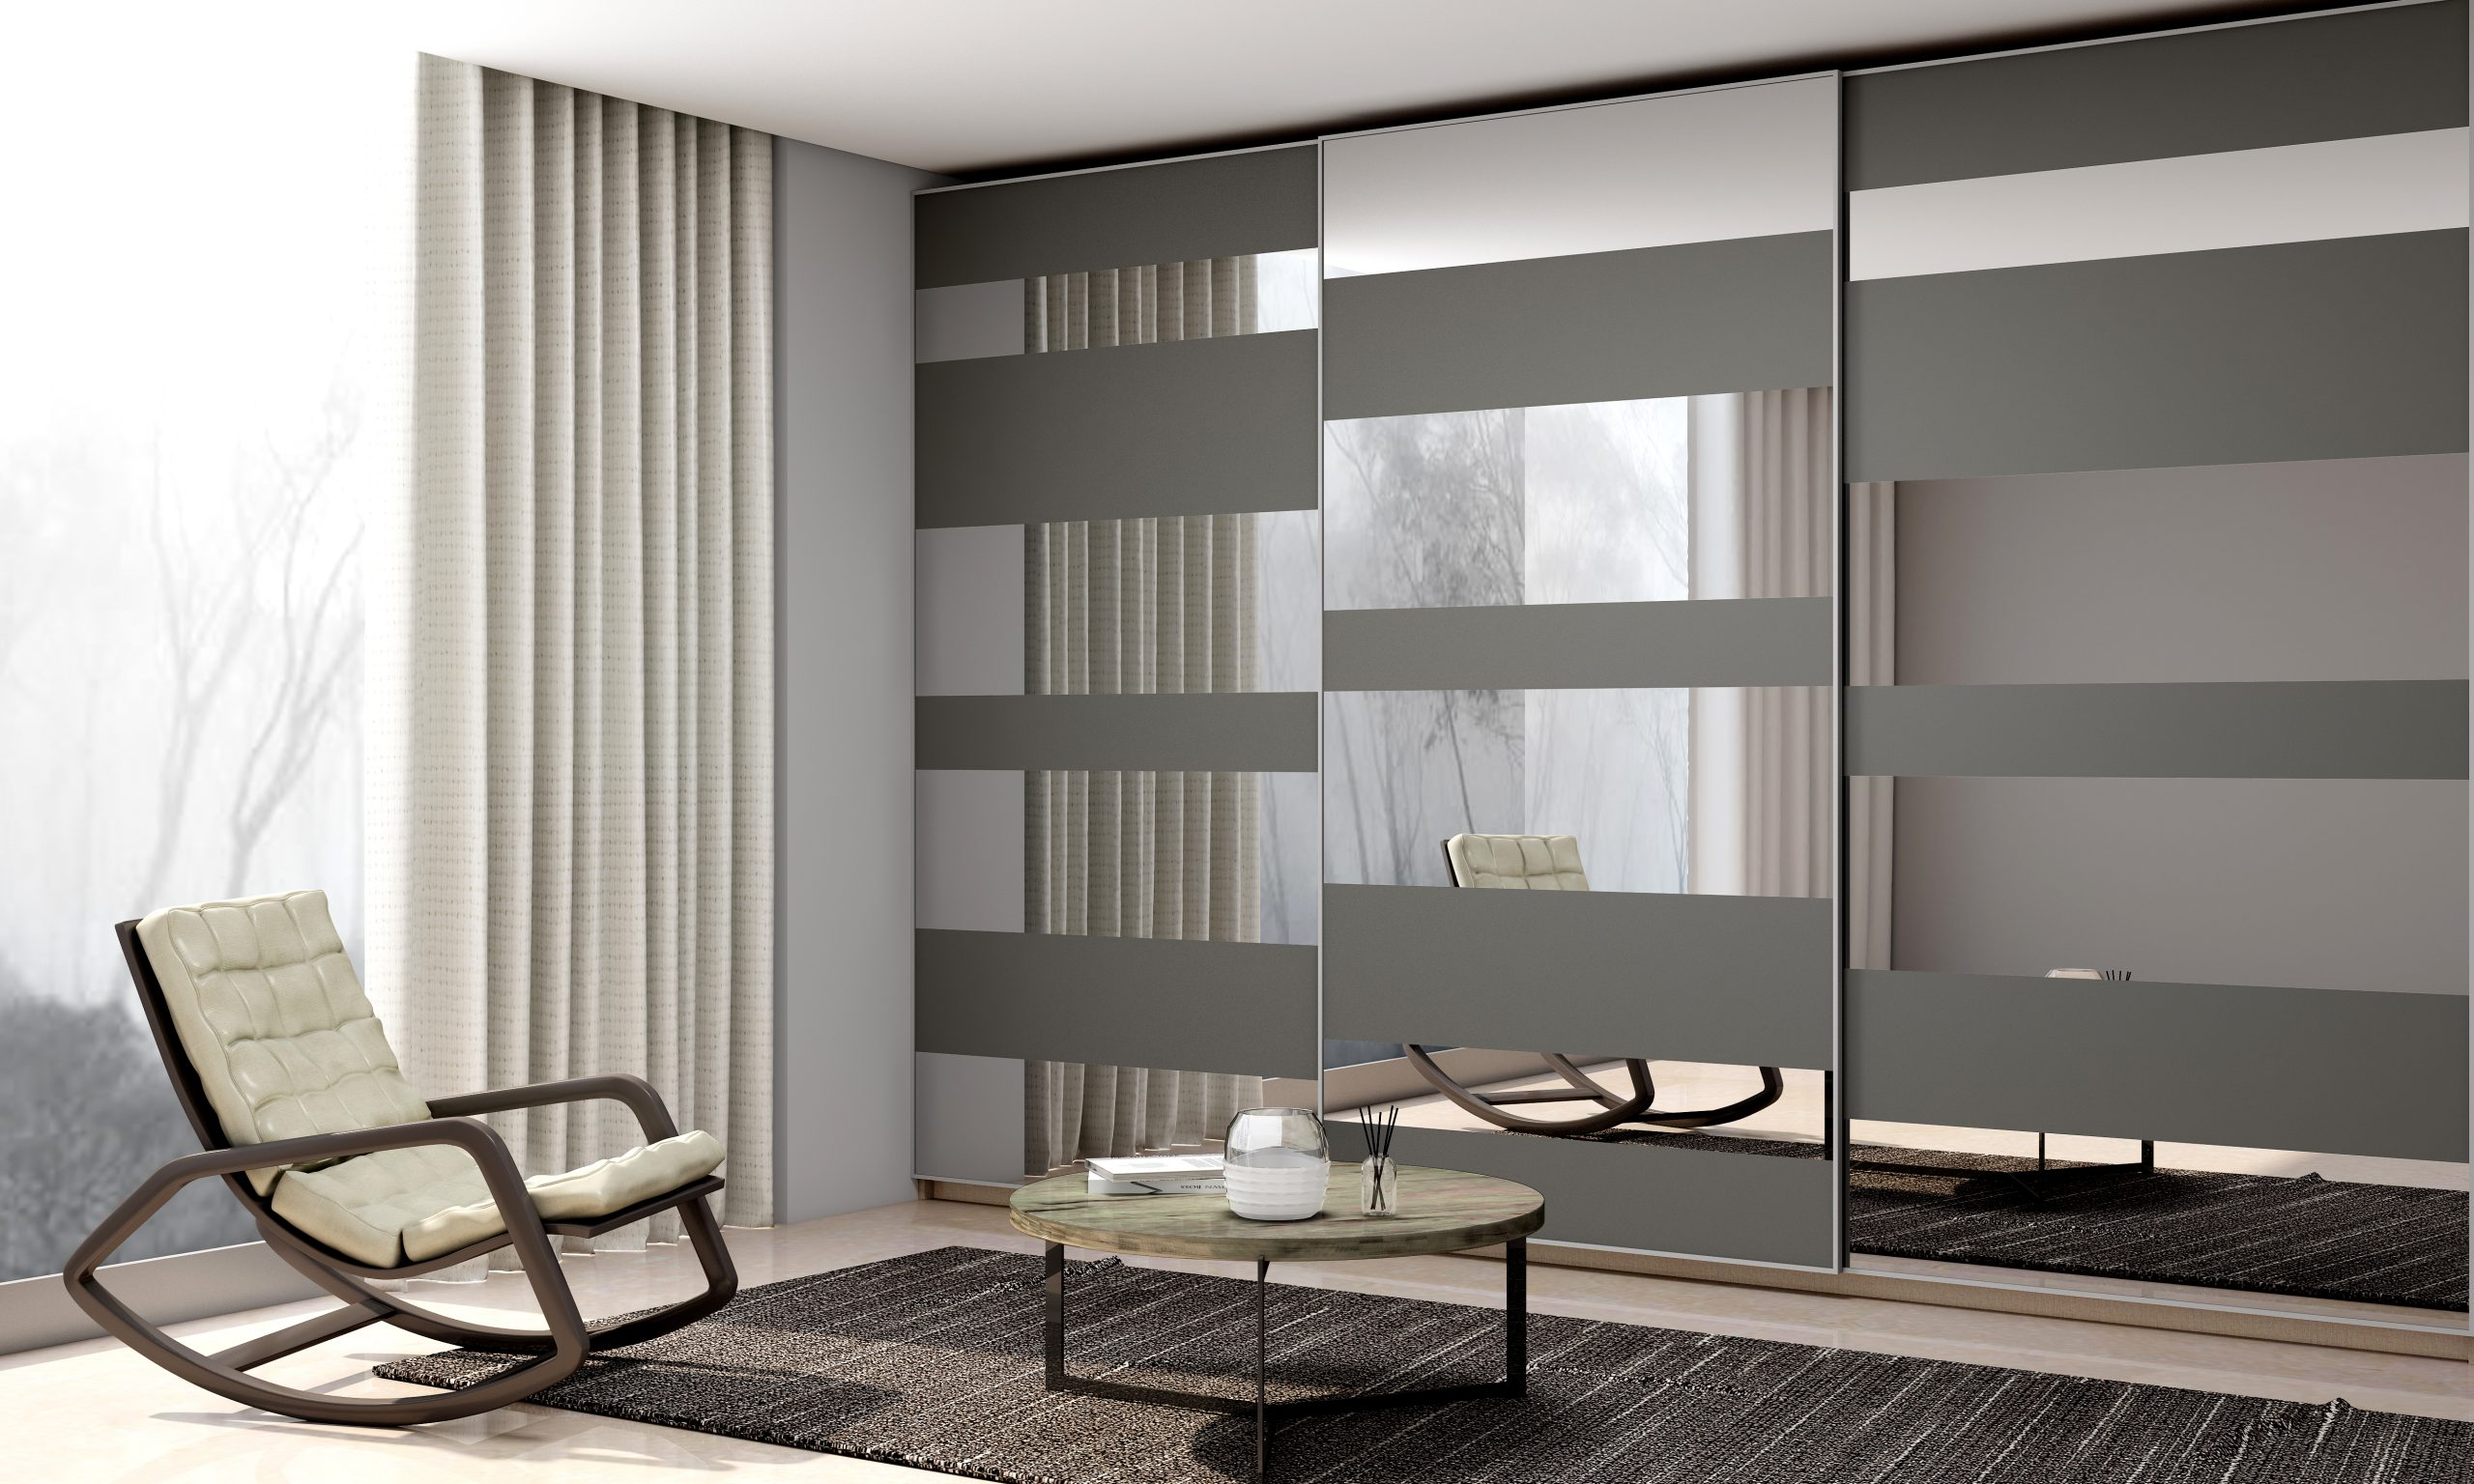 Framed Fitted Built-in Sliding Door Wardrobe in Silver Grey and Silver Mirrors Combinations